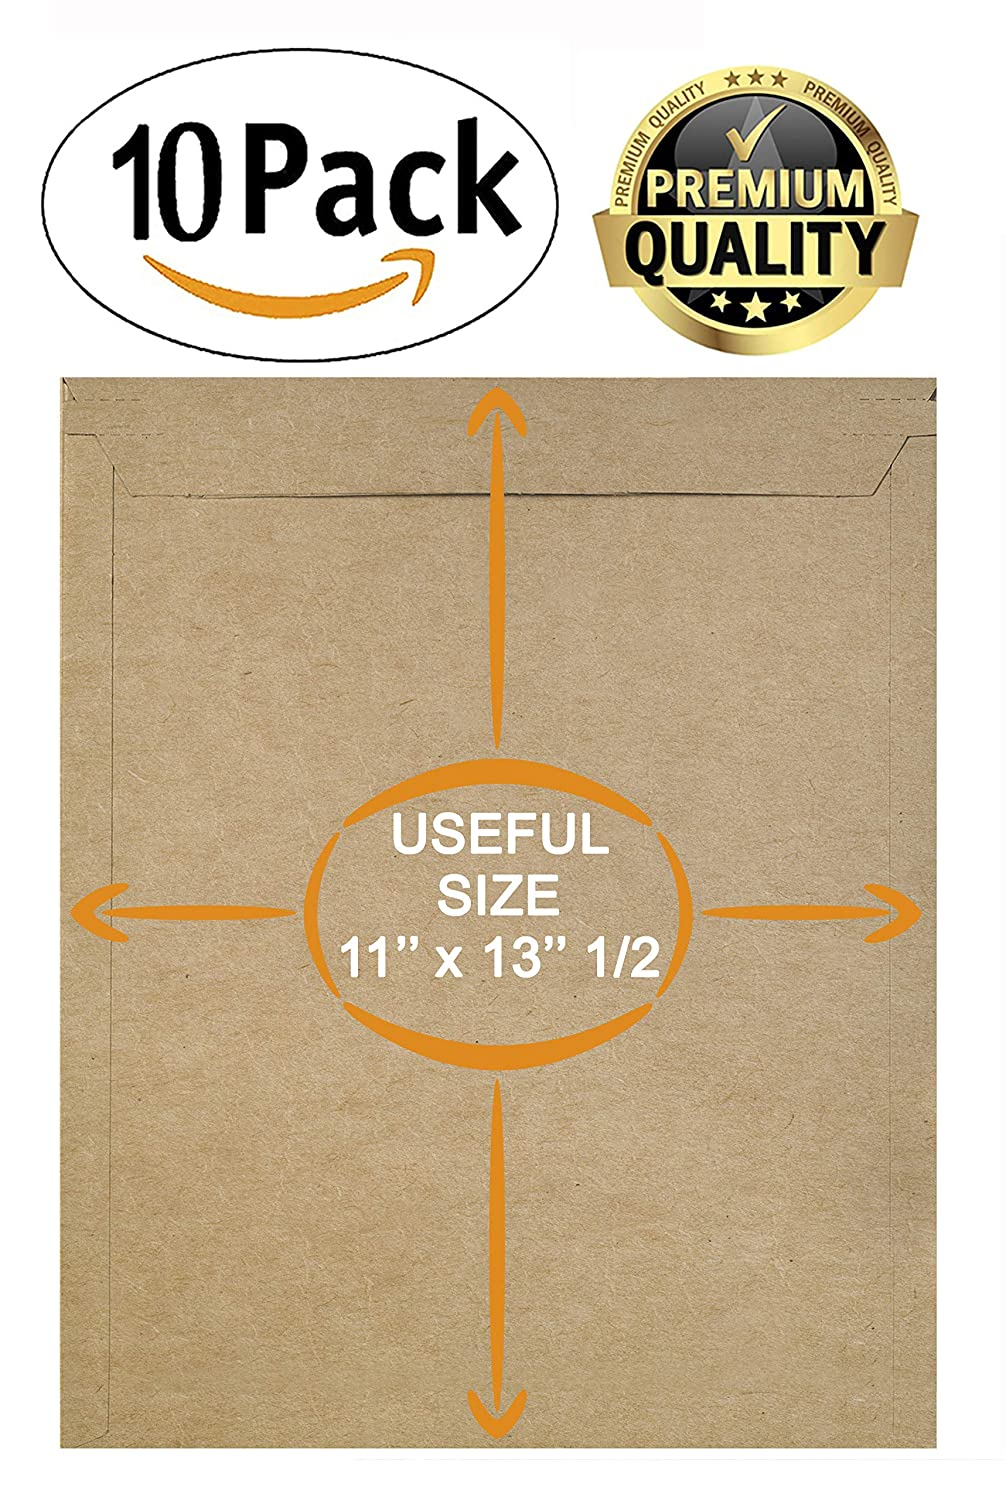 No Bend documents Peel and Seal Photo Large Size Photography Mailers ABC 10 Pack Natural Kraft Stay Flat Mailers 11 x 13.5 Brown Chipboard envelopes 11 x 13 1//2 Prints Rigid Paperboard mailers